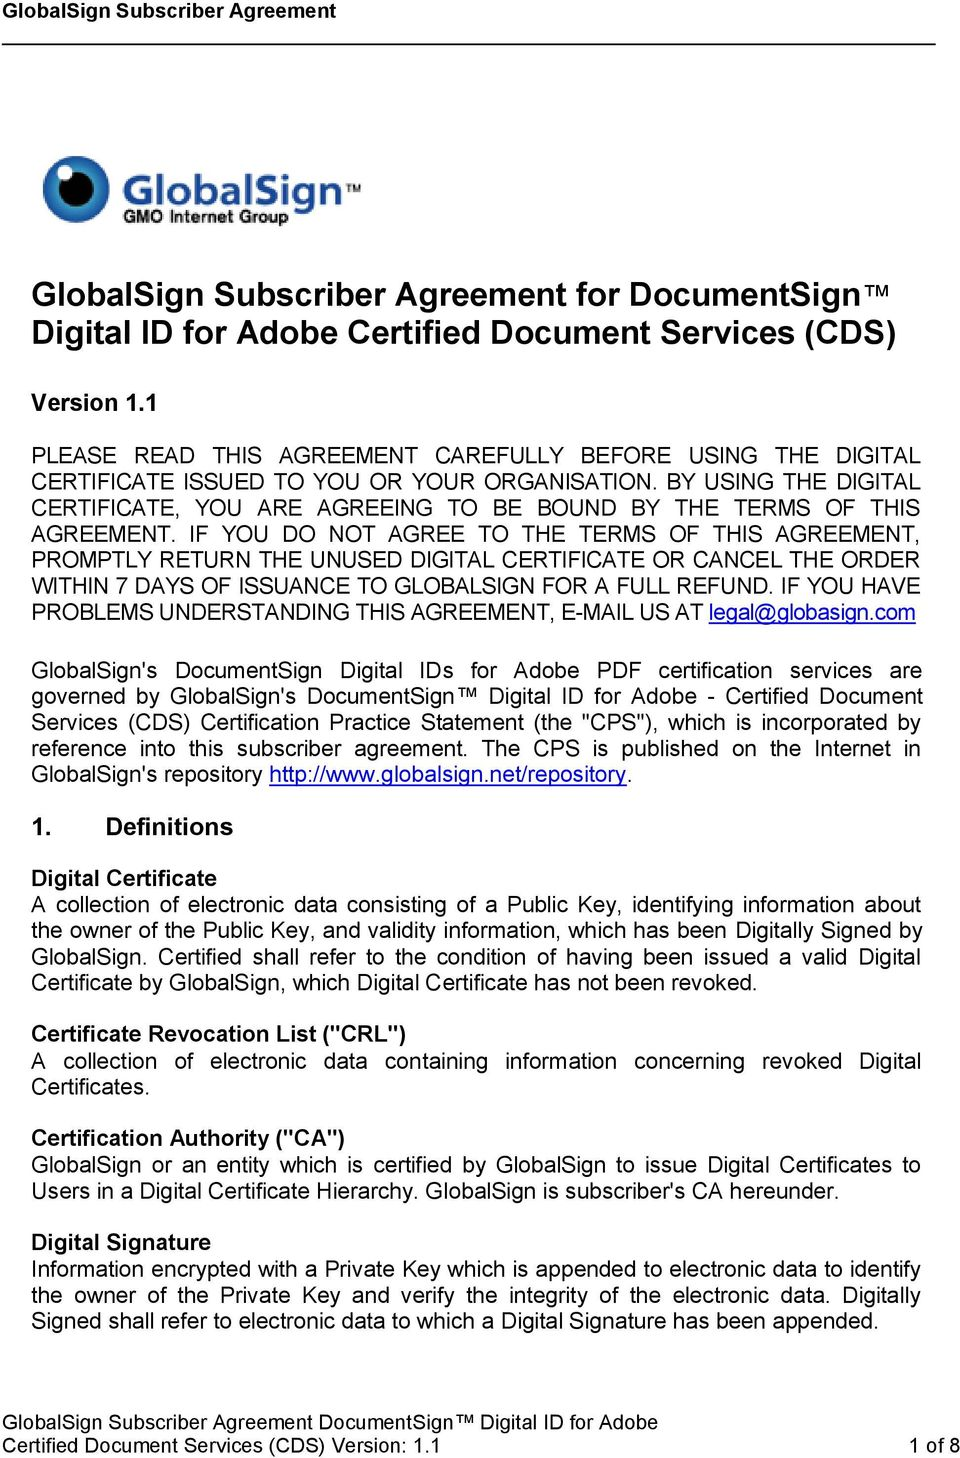 BY USING THE DIGITAL CERTIFICATE, YOU ARE AGREEING TO BE BOUND BY THE TERMS OF THIS AGREEMENT.